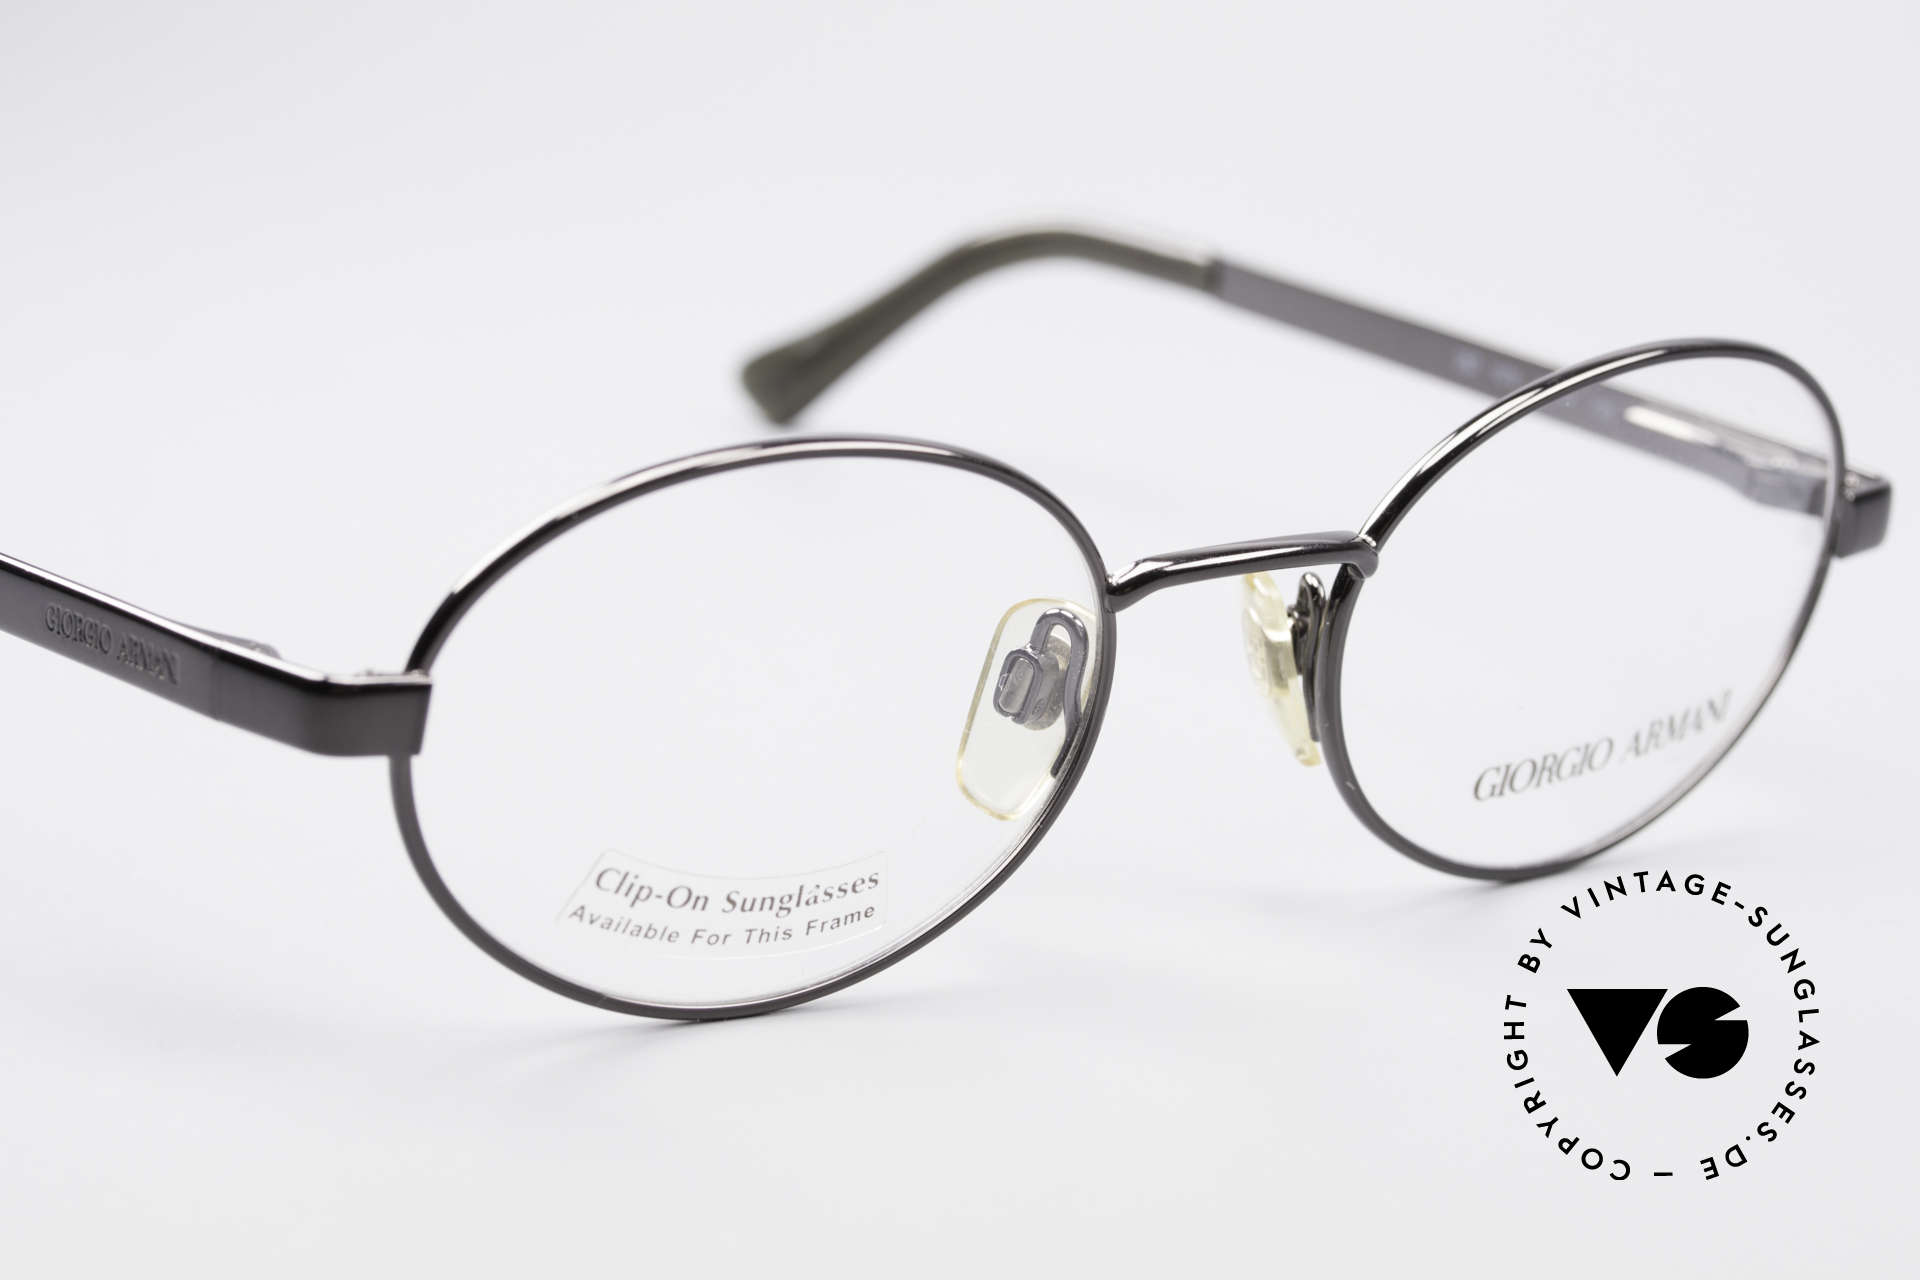 Giorgio Armani 257 90s Oval Vintage Eyeglasses, NO RETRO EYEWEAR, but a 25 years old Original, Made for Men and Women